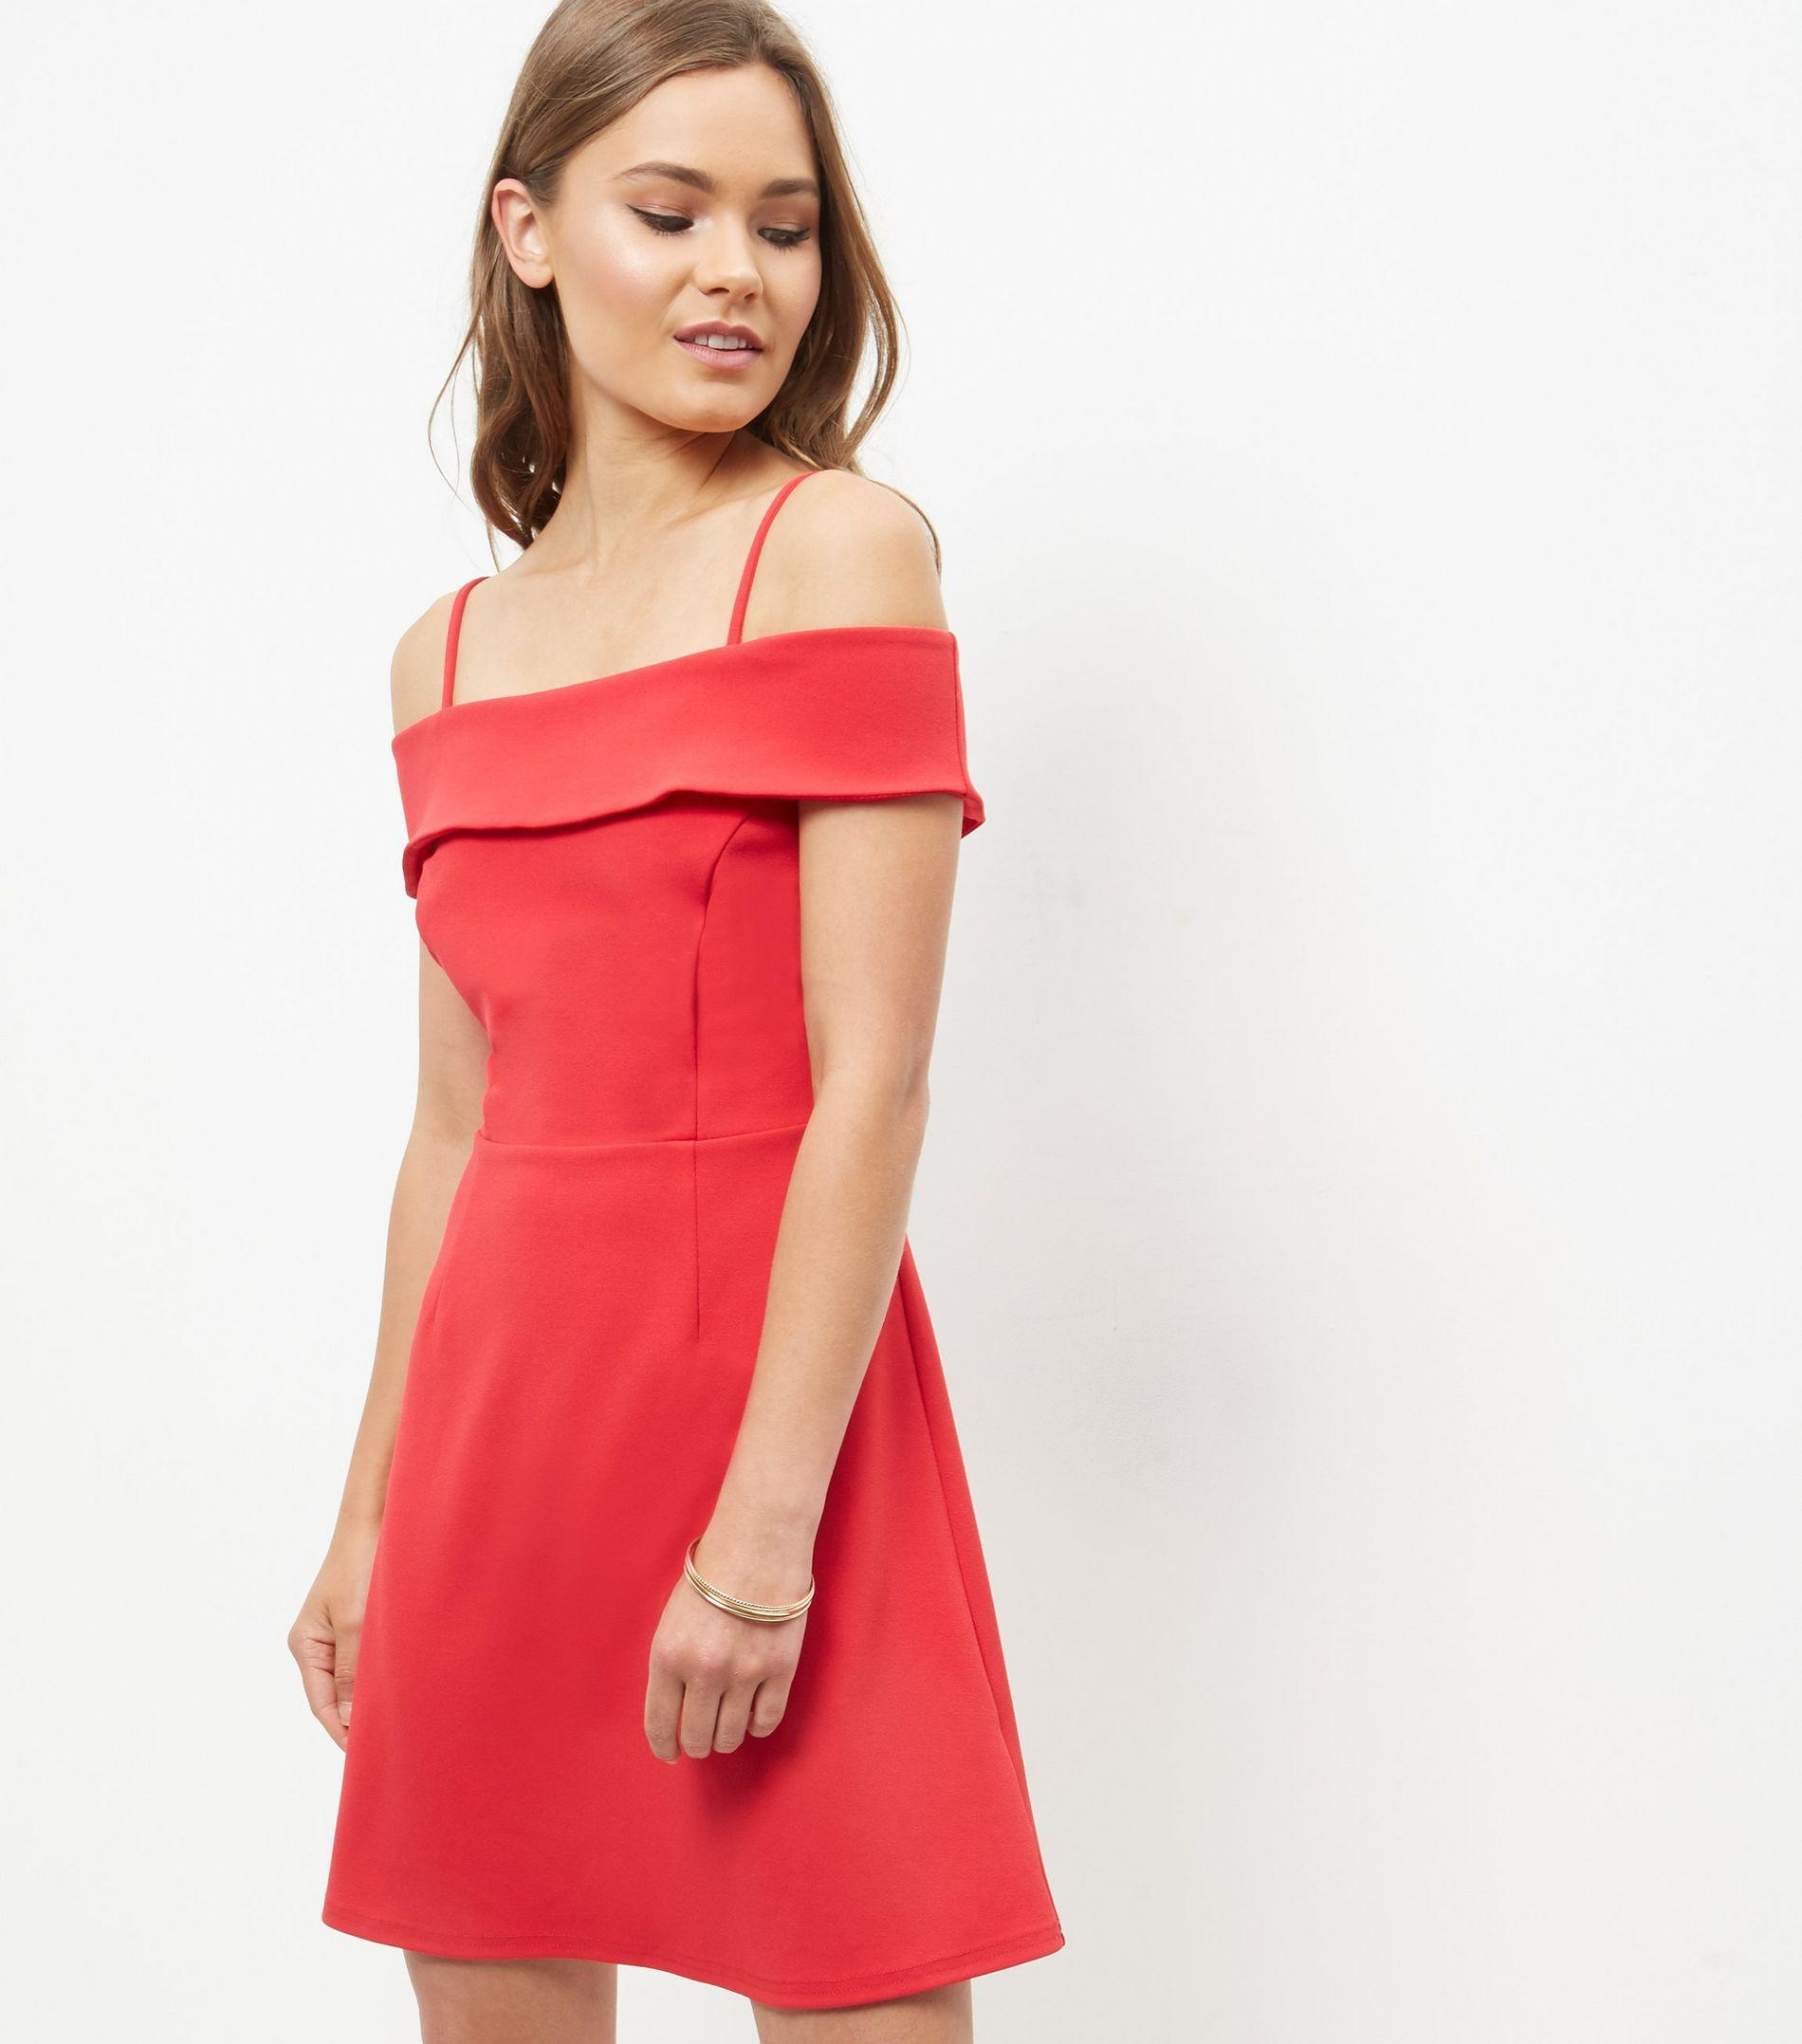 Shop for the latest fashion styles and trends for women at ASOS. Discover our range of women's clothes, accessories, beauty, activewear and more.